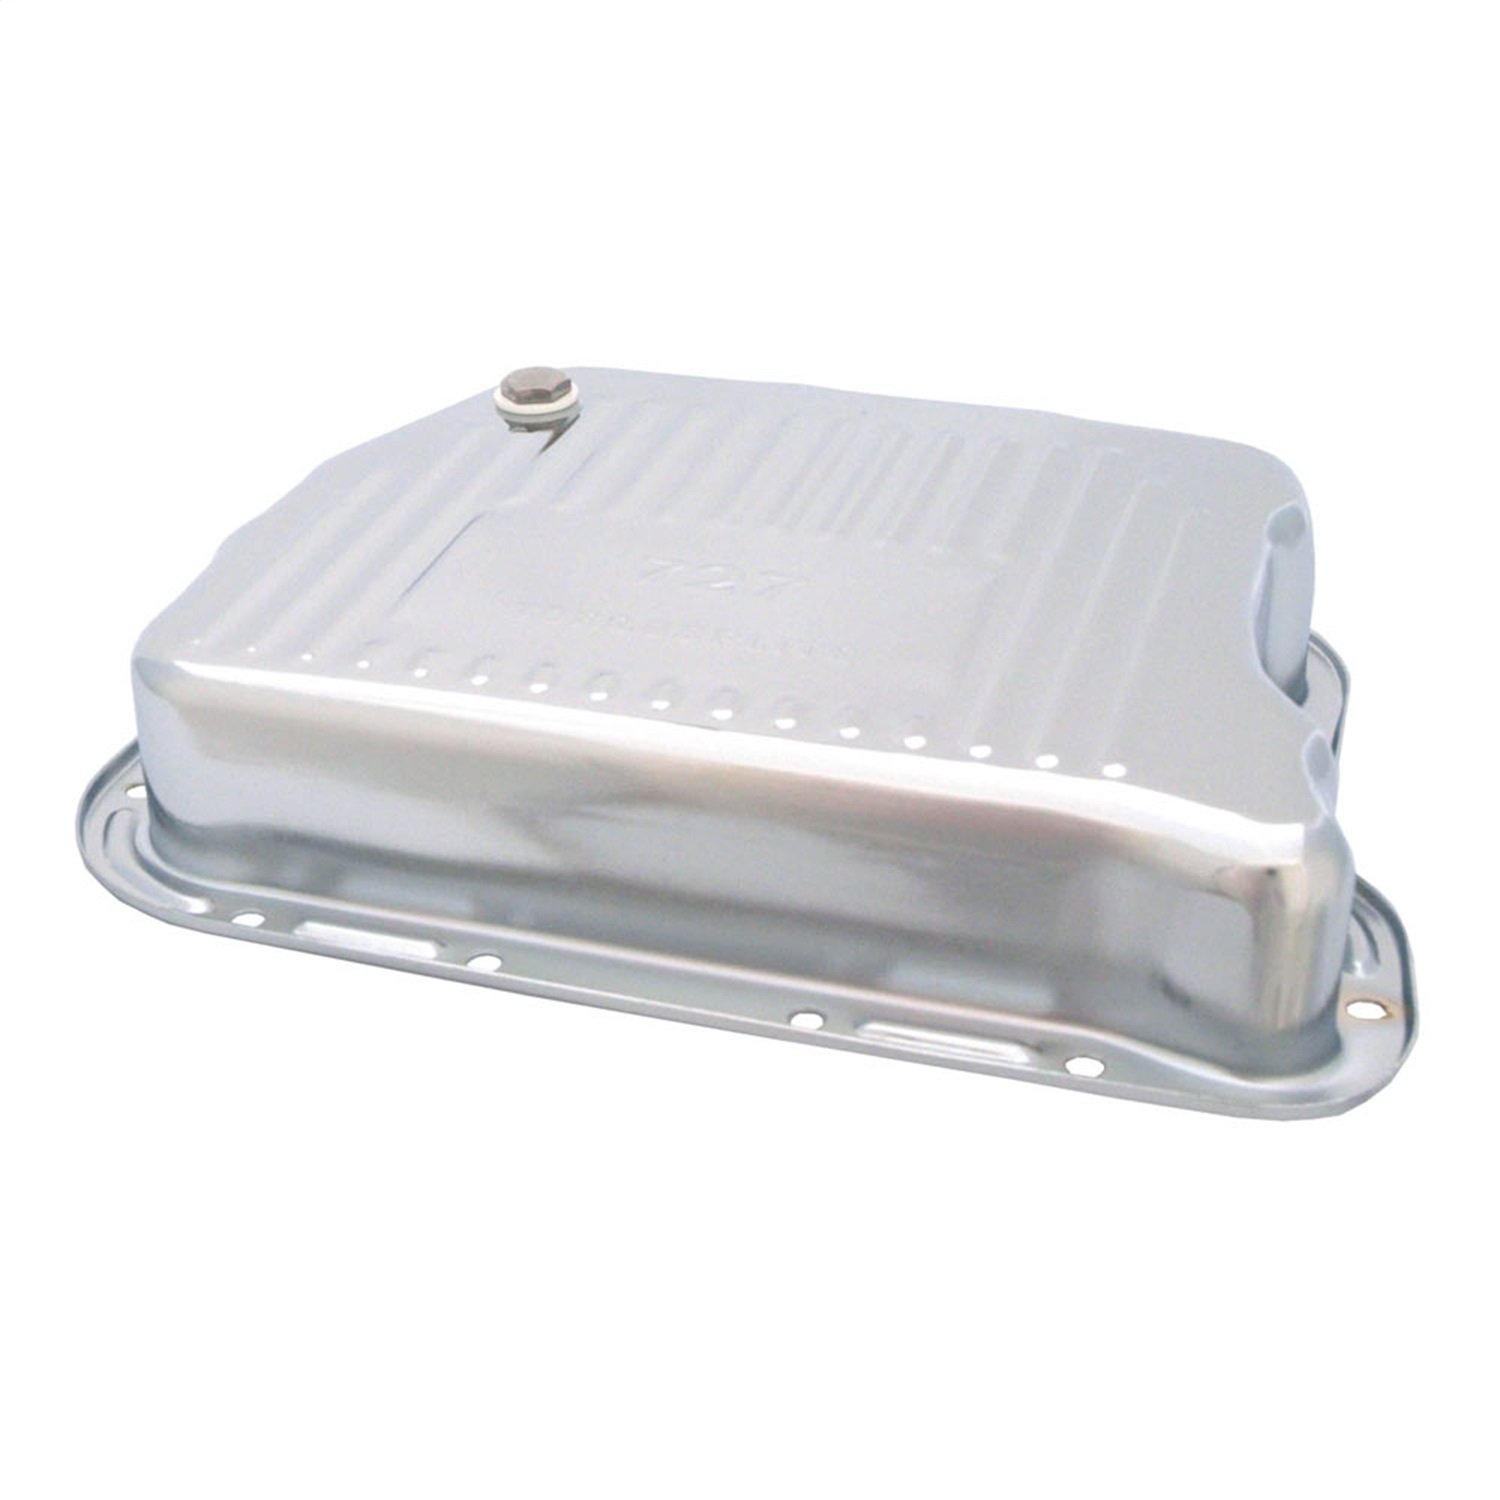 Spectre Performance 5465 Chrome Extra Capacity Transmission Pan Chrysler 727 by Spectre Performance